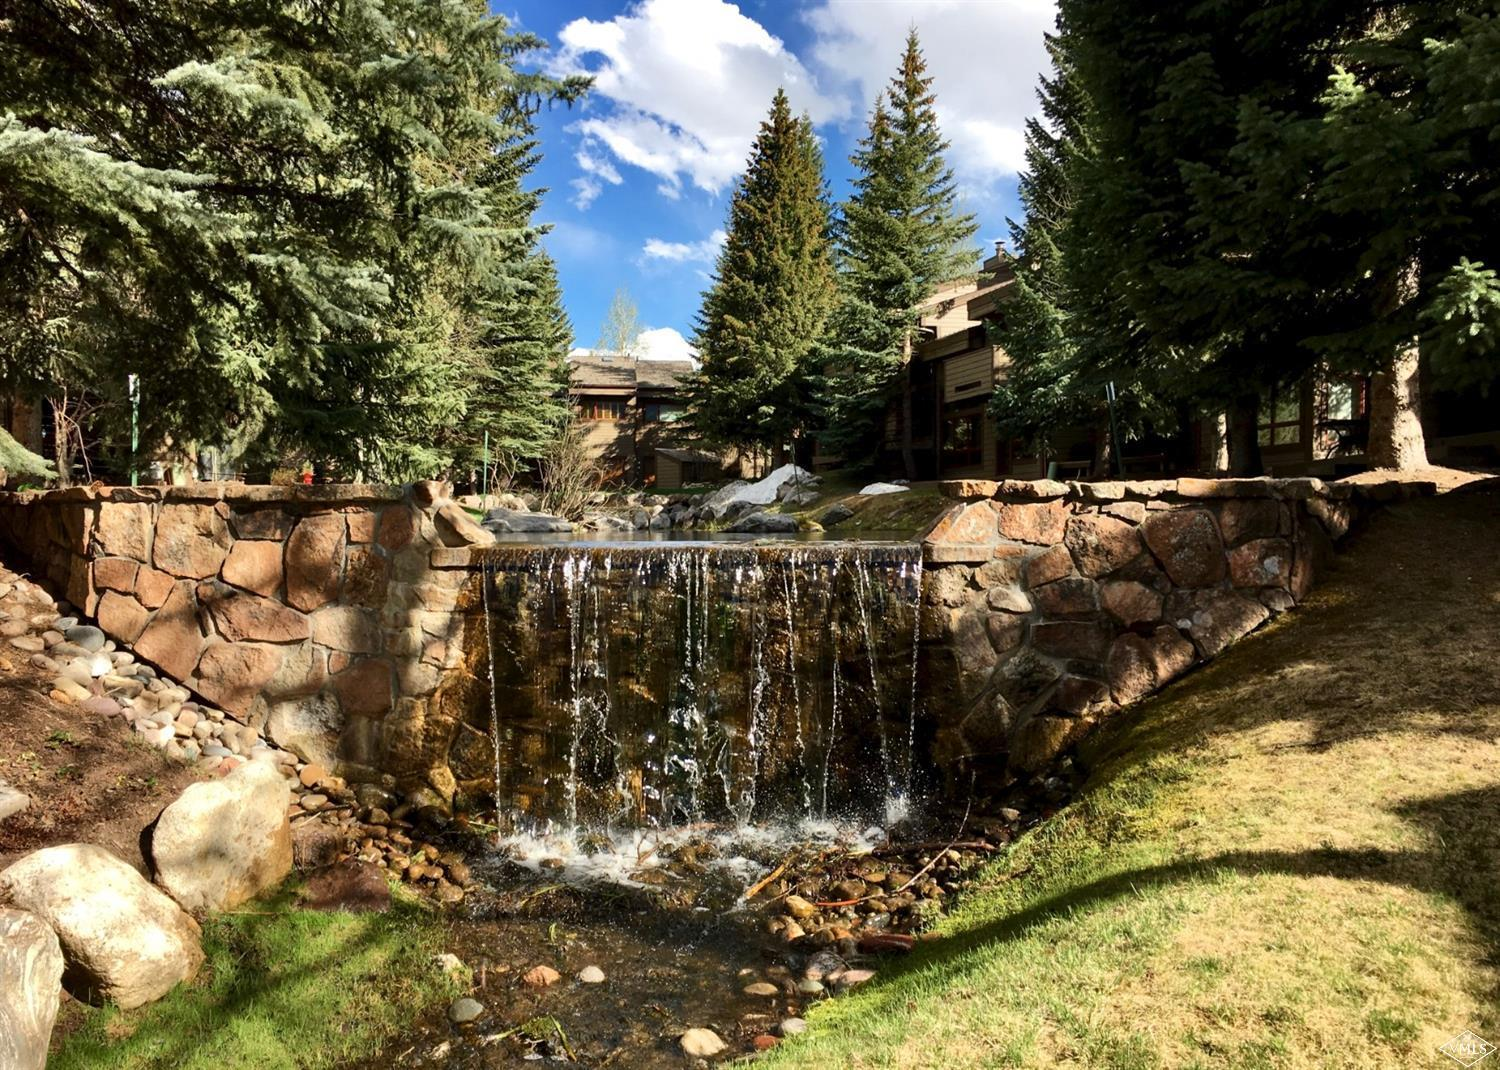 4552 Meadow Drive, Drive, 42, Vail, CO 81657 Property Photo - Vail, CO real estate listing